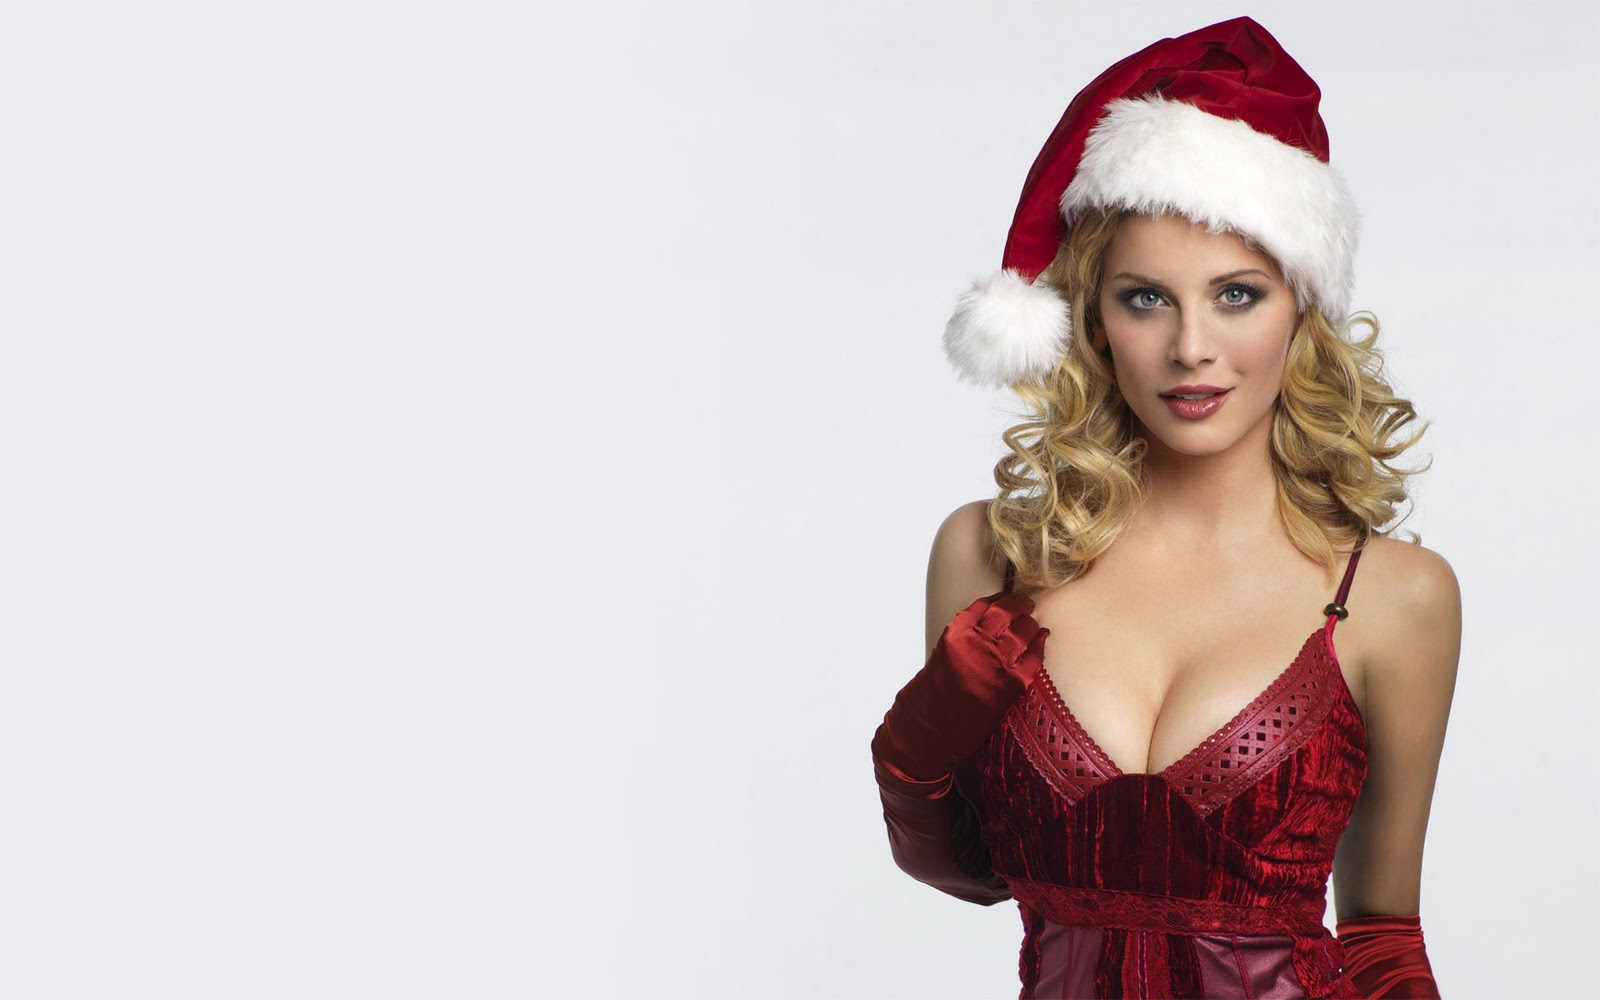 Female celebrity christmas wallpapers